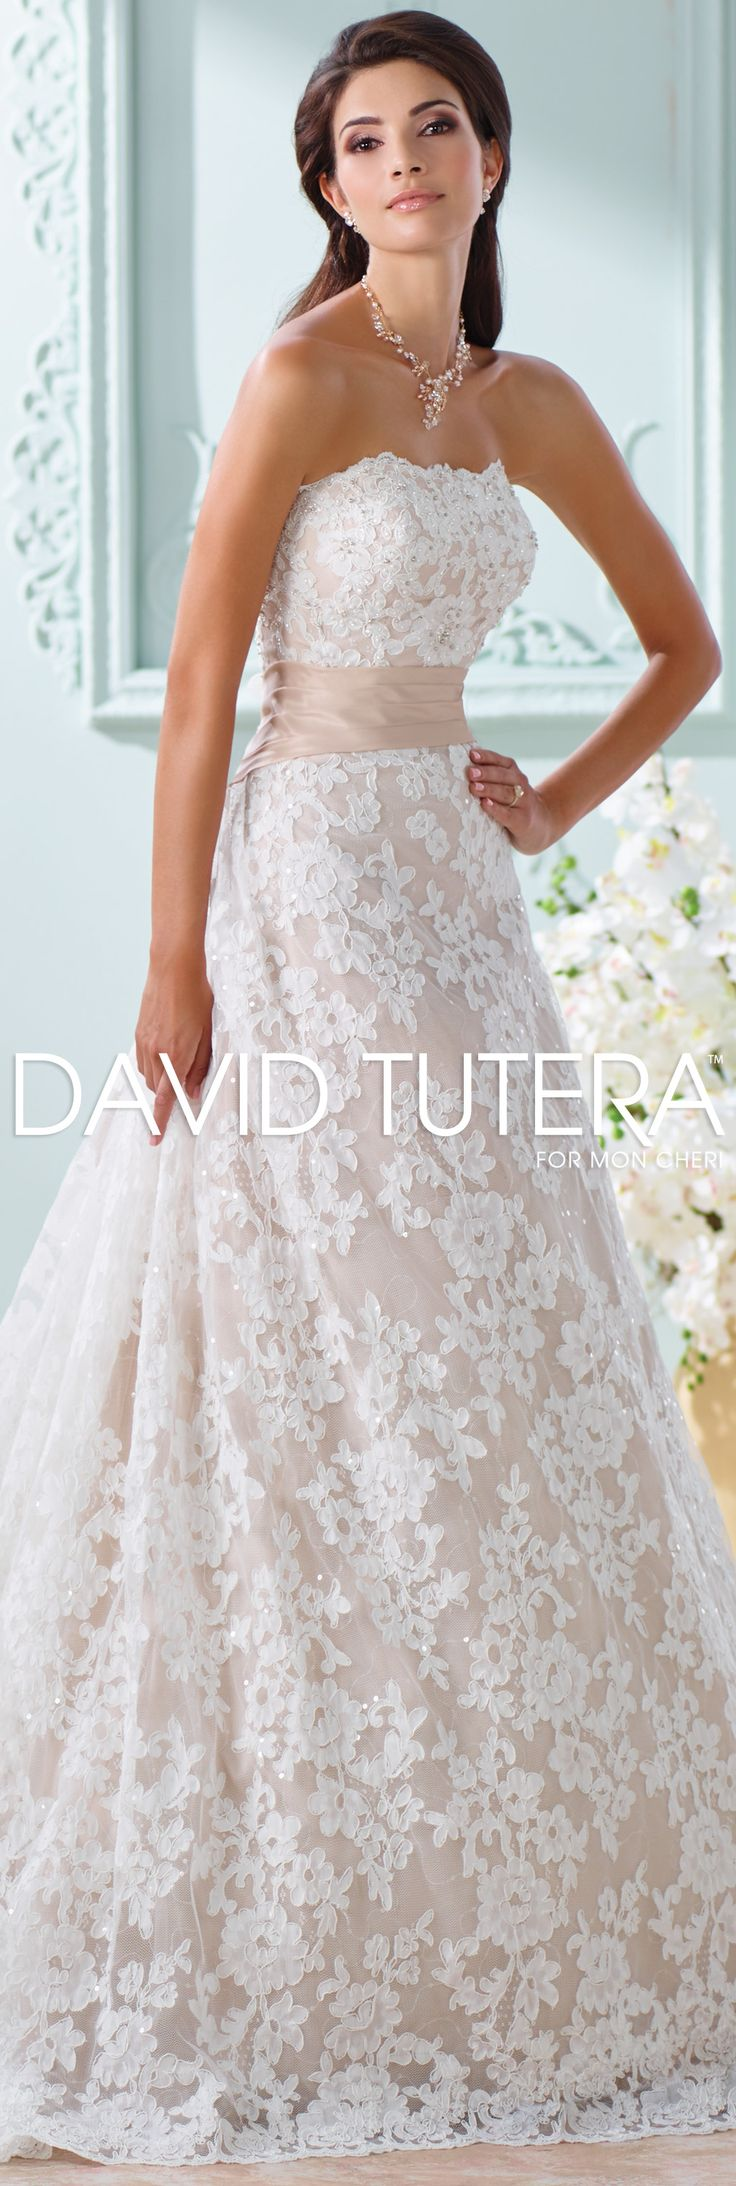 The David Tutera for Mon Cheri Spring 2016 Wedding Gown Collection - Style No. 116219 Yalene #laceweddingdresses